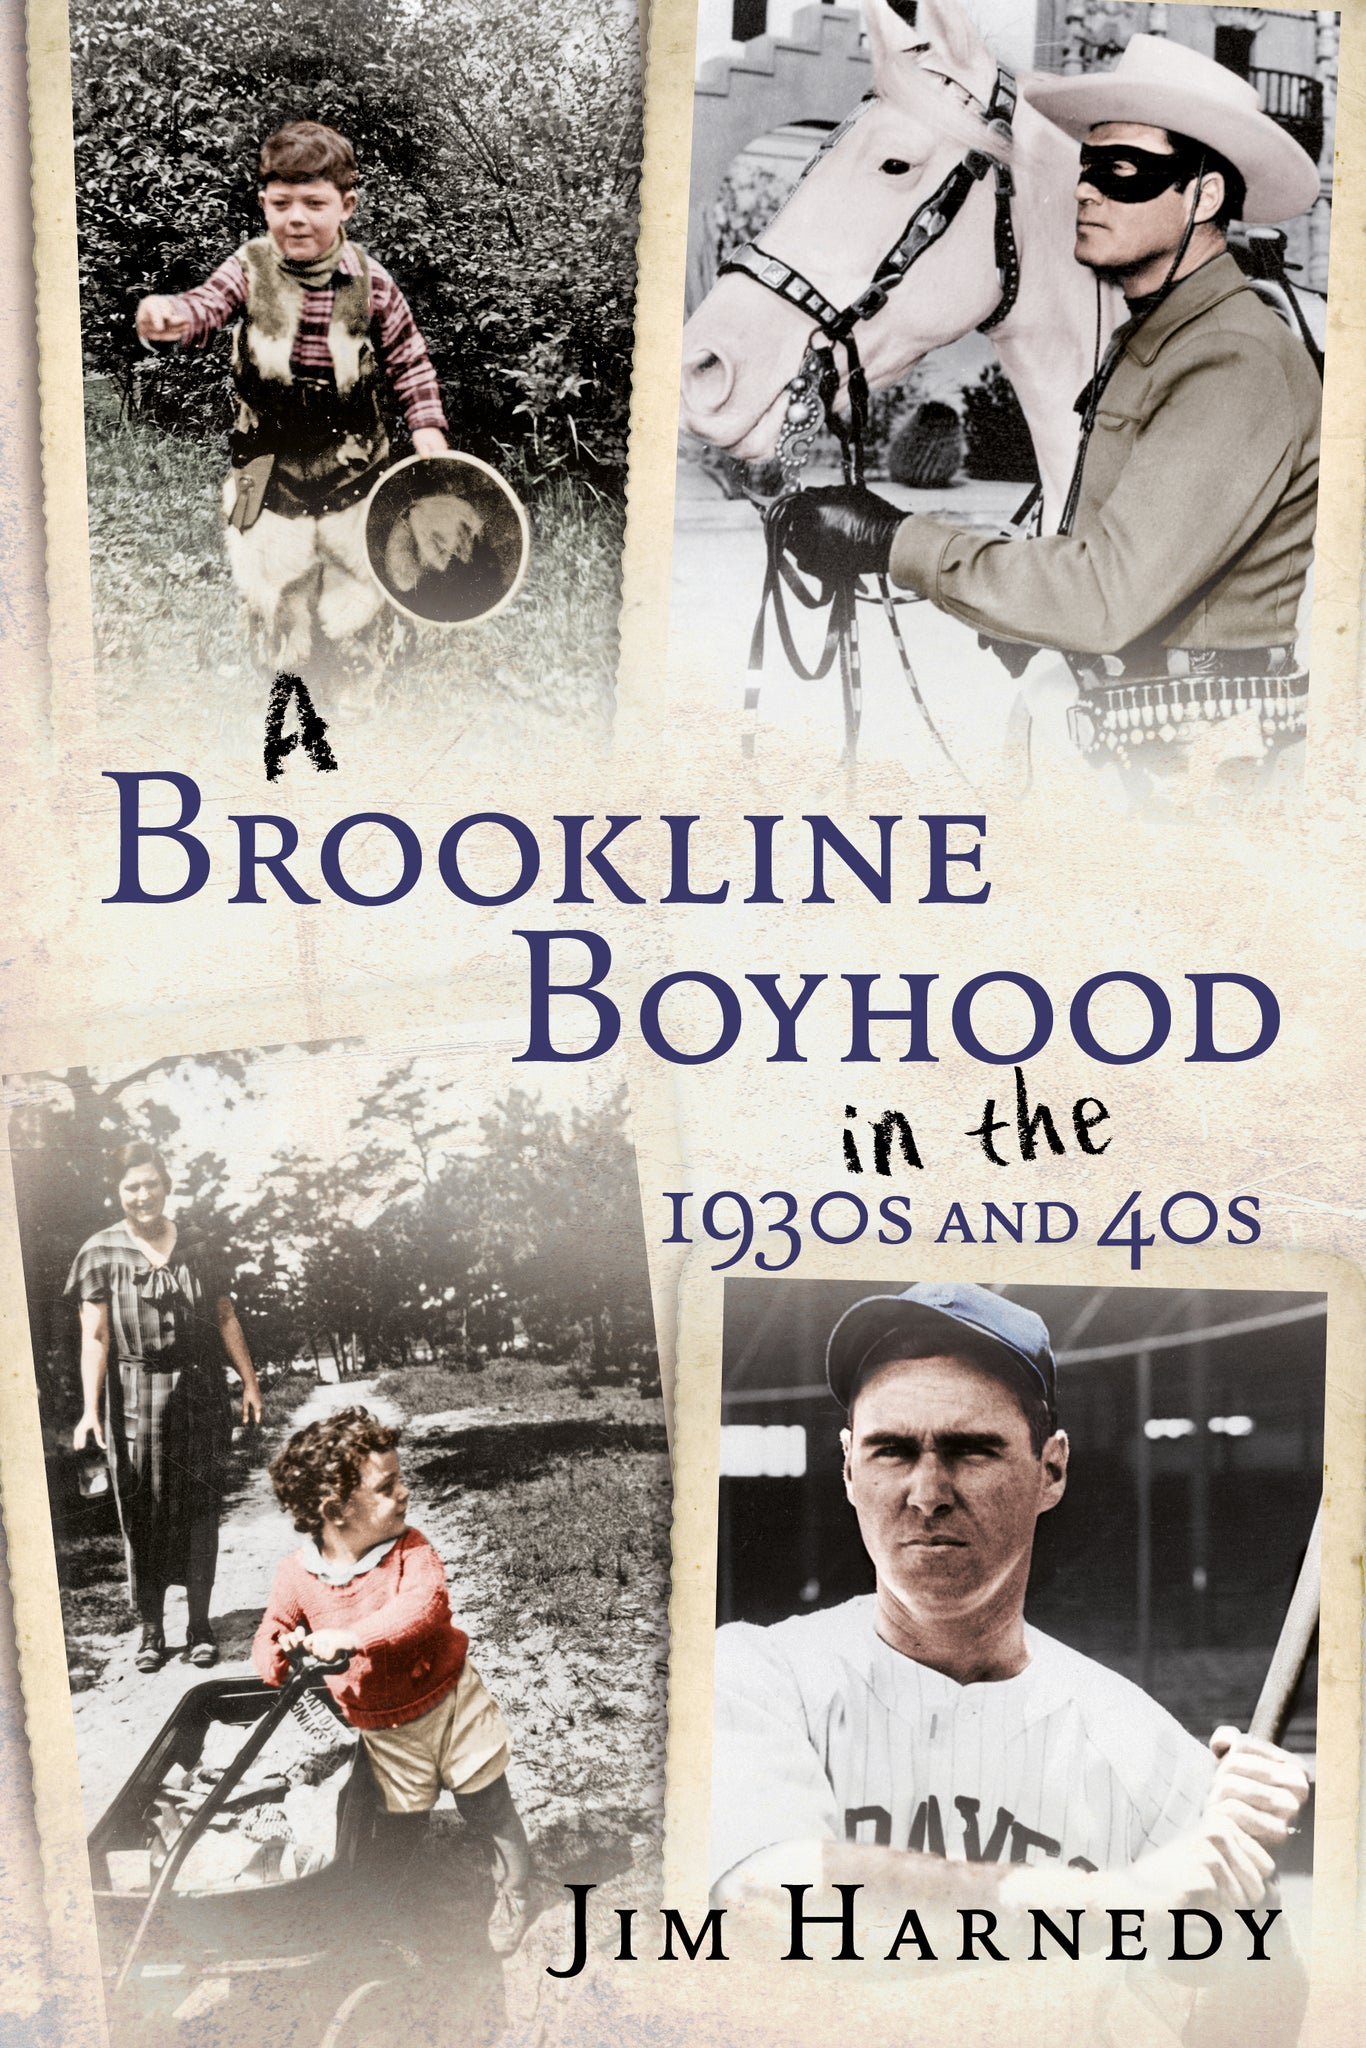 A Brookline Boyhood in the 1930s and 40s - available from Fonthill Media